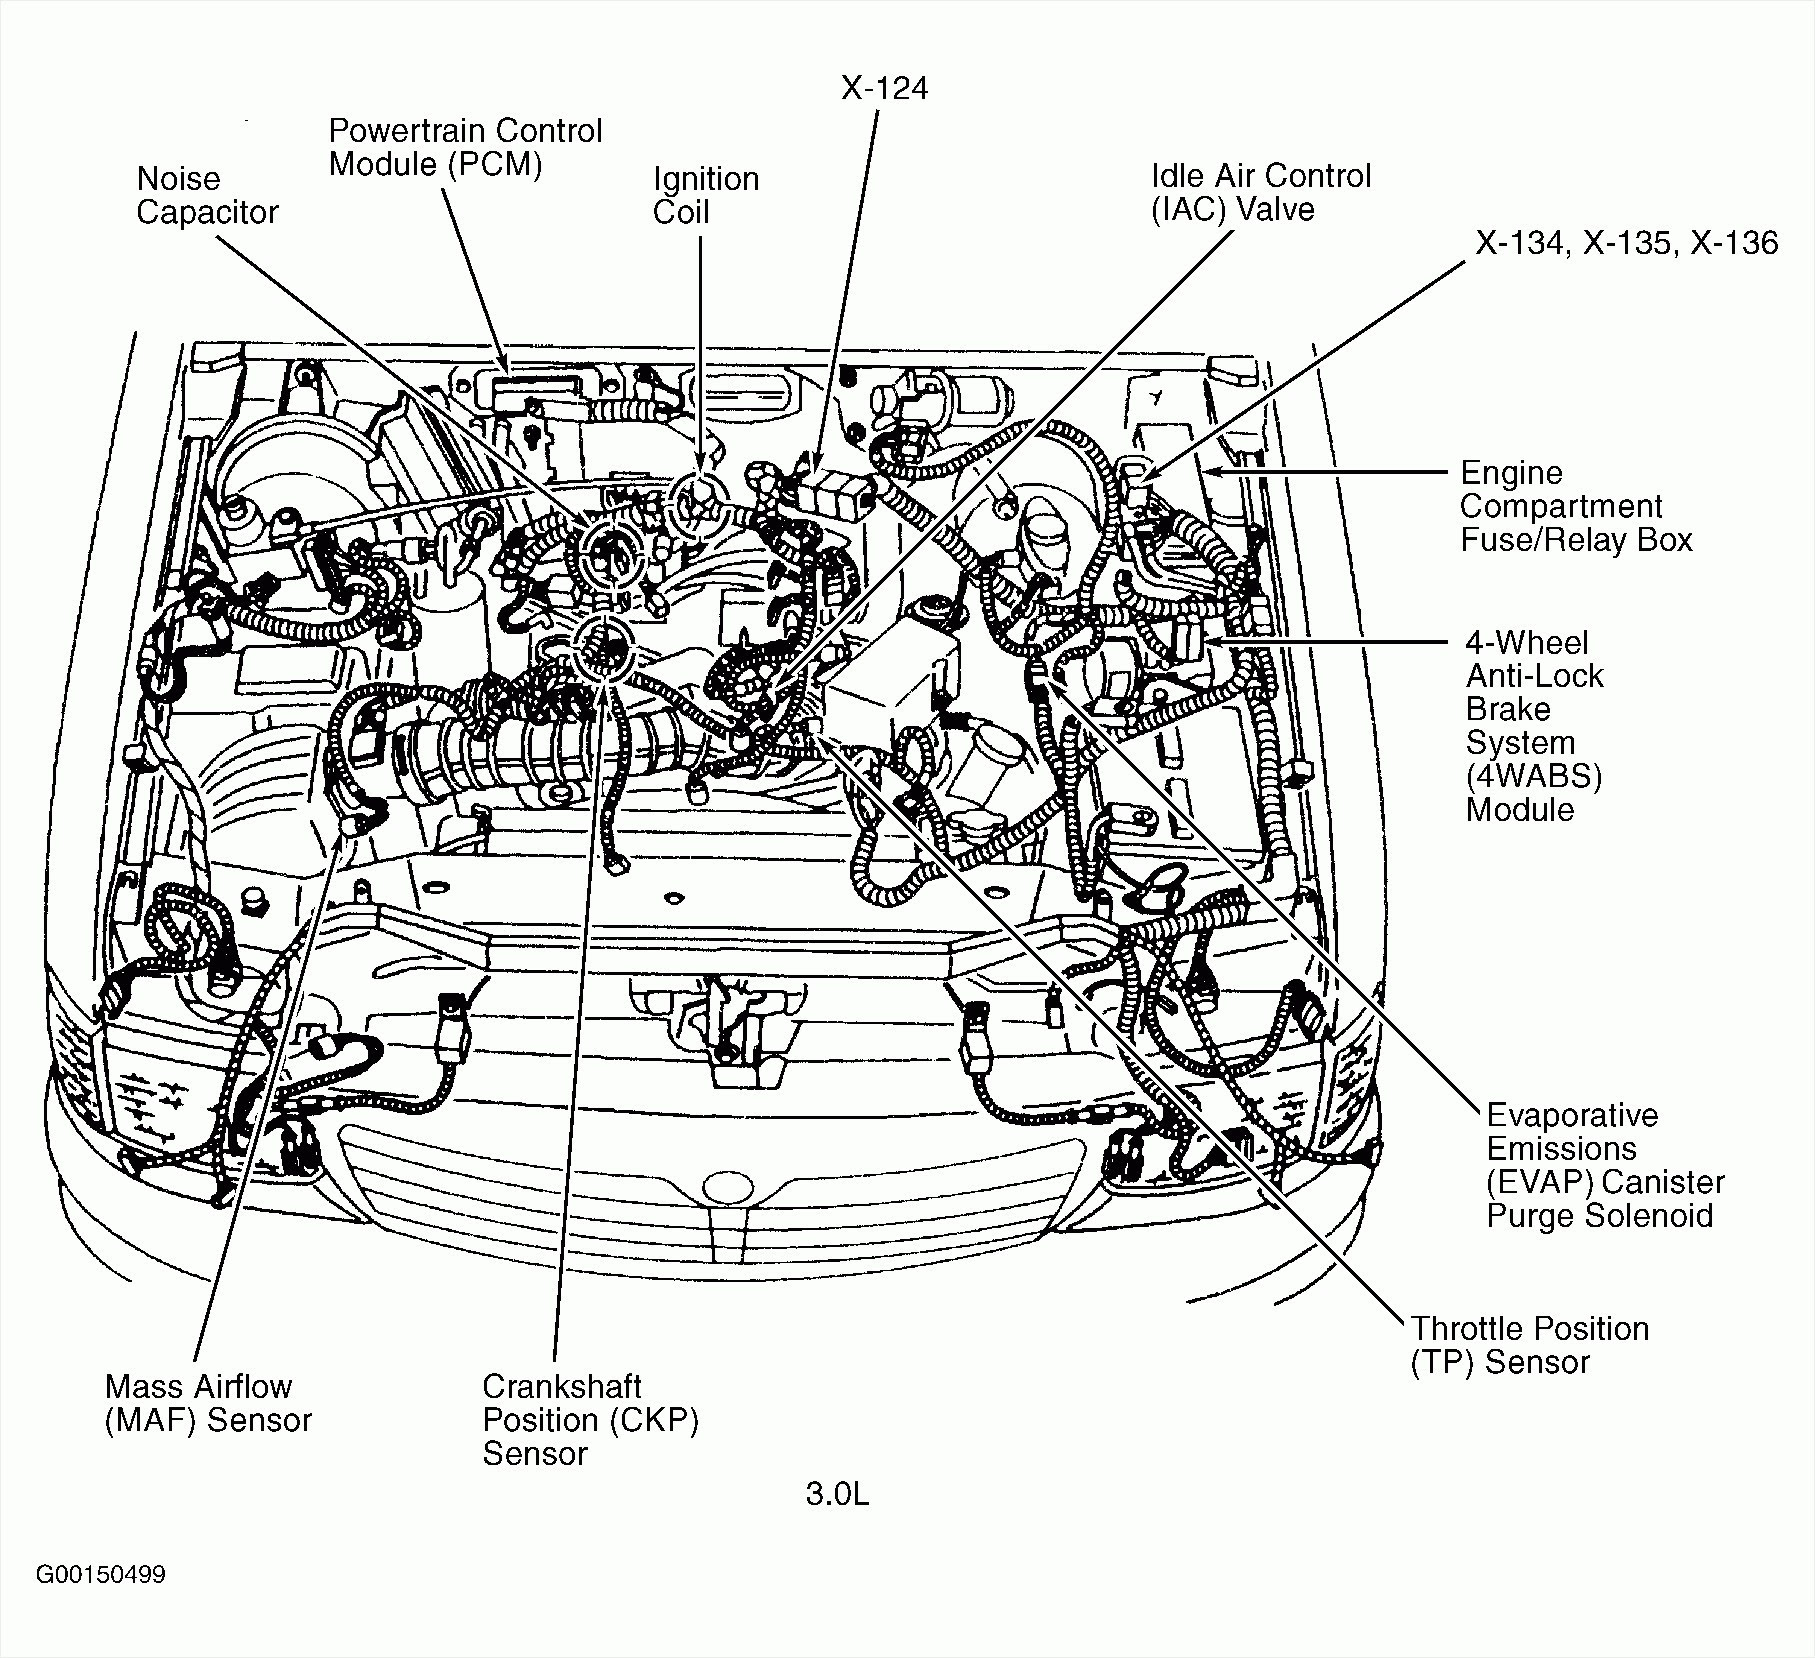 1989 Buick Lesabre Engine Diagram Wiring Diagram Schema Dive Shape Dive Shape Atmosphereconcept It